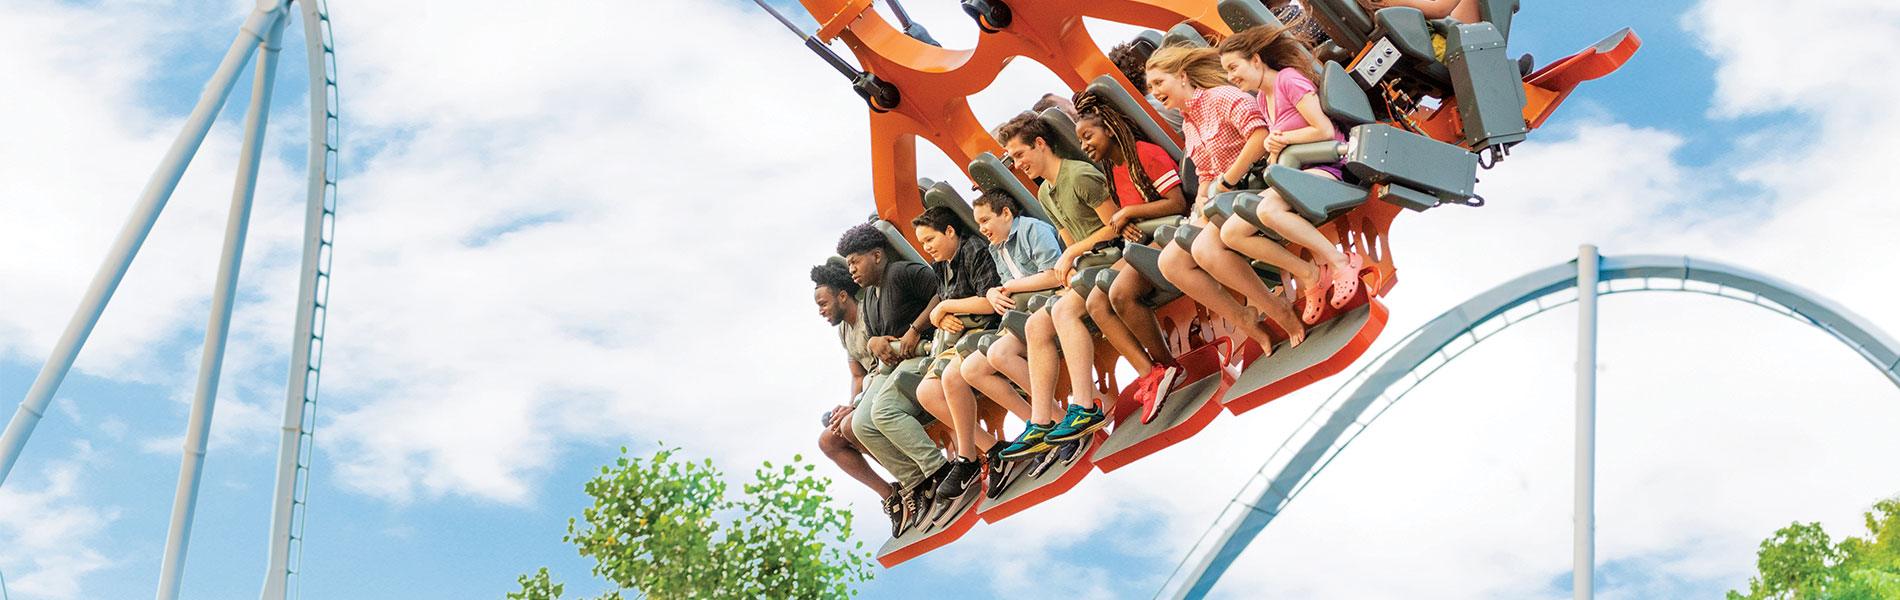 Now Open - Finnegan's Flyer, extreme screaming swing at Busch Gardens Williamsburg